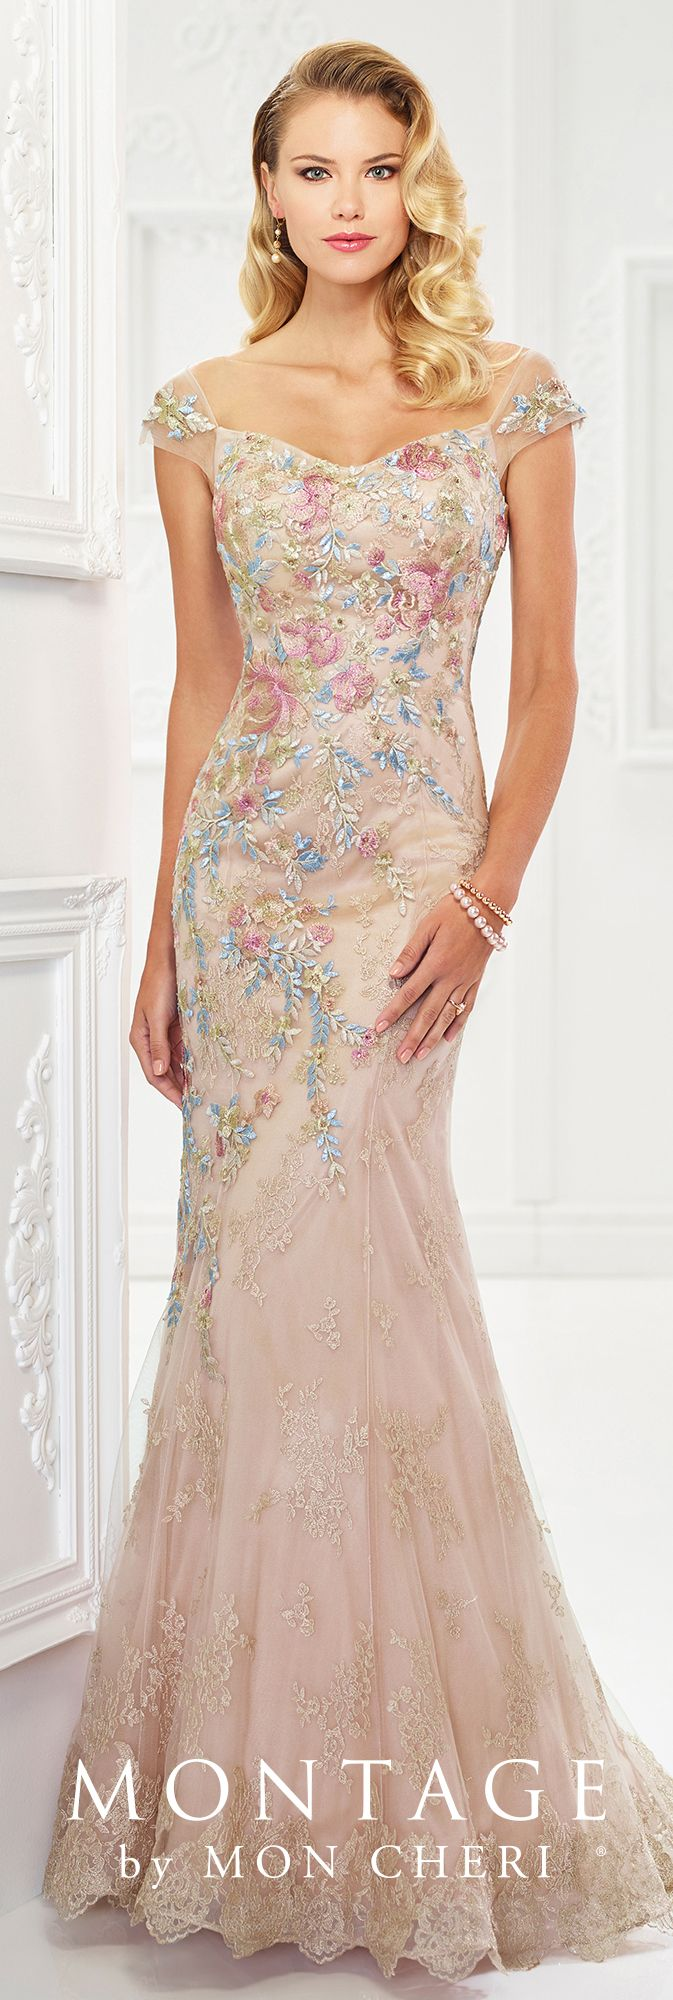 Montage By Mon Cheri 118966 - Eye-catching floral embroidery takes center stage in this beautiful metallic lace and tulle fit and flare gown with heat set stones, tip-of-the-shoulder illusion cap sleeves, a soft sweetheart neckline, a dropped waist, a scalloped hem, and a sweep train. A matching shawl is included.